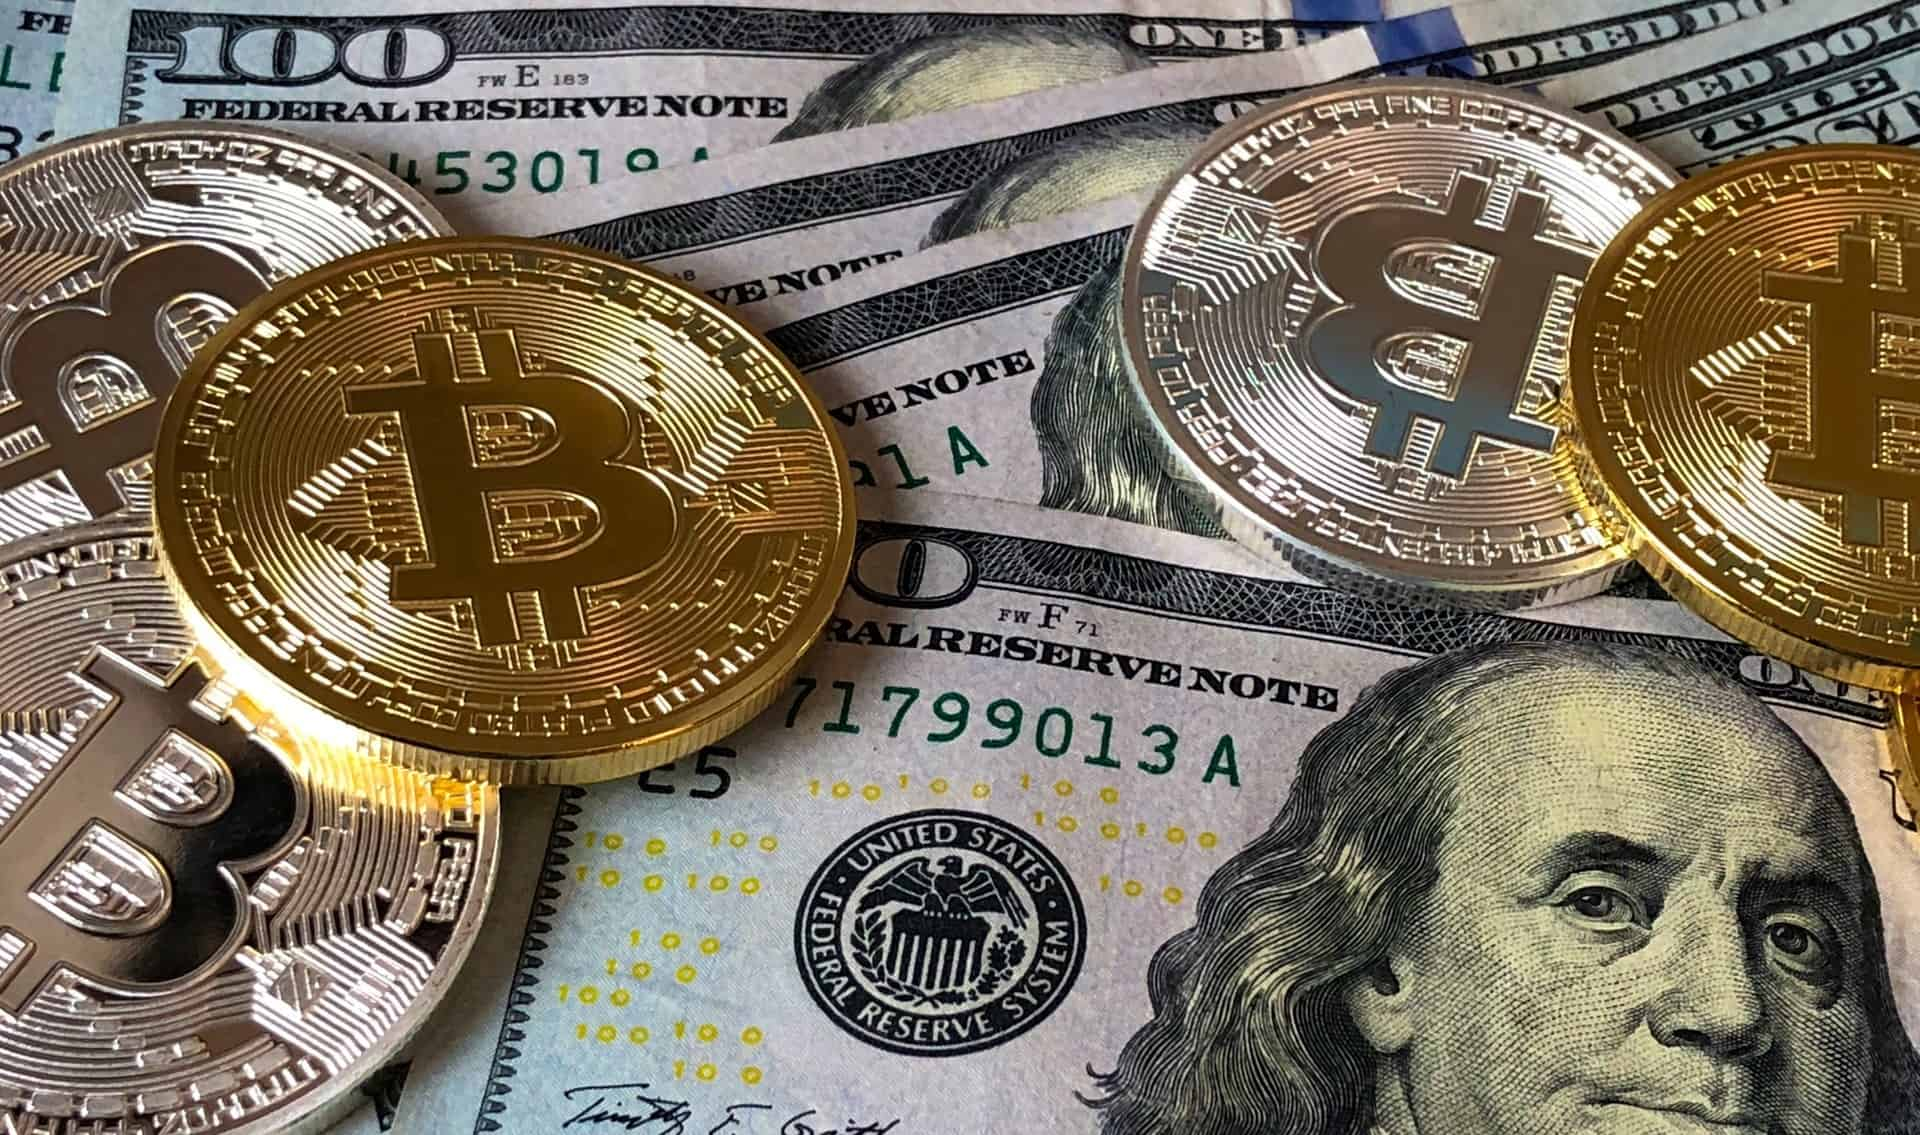 Bitcoin displays V-shaped recovery as correlations spike